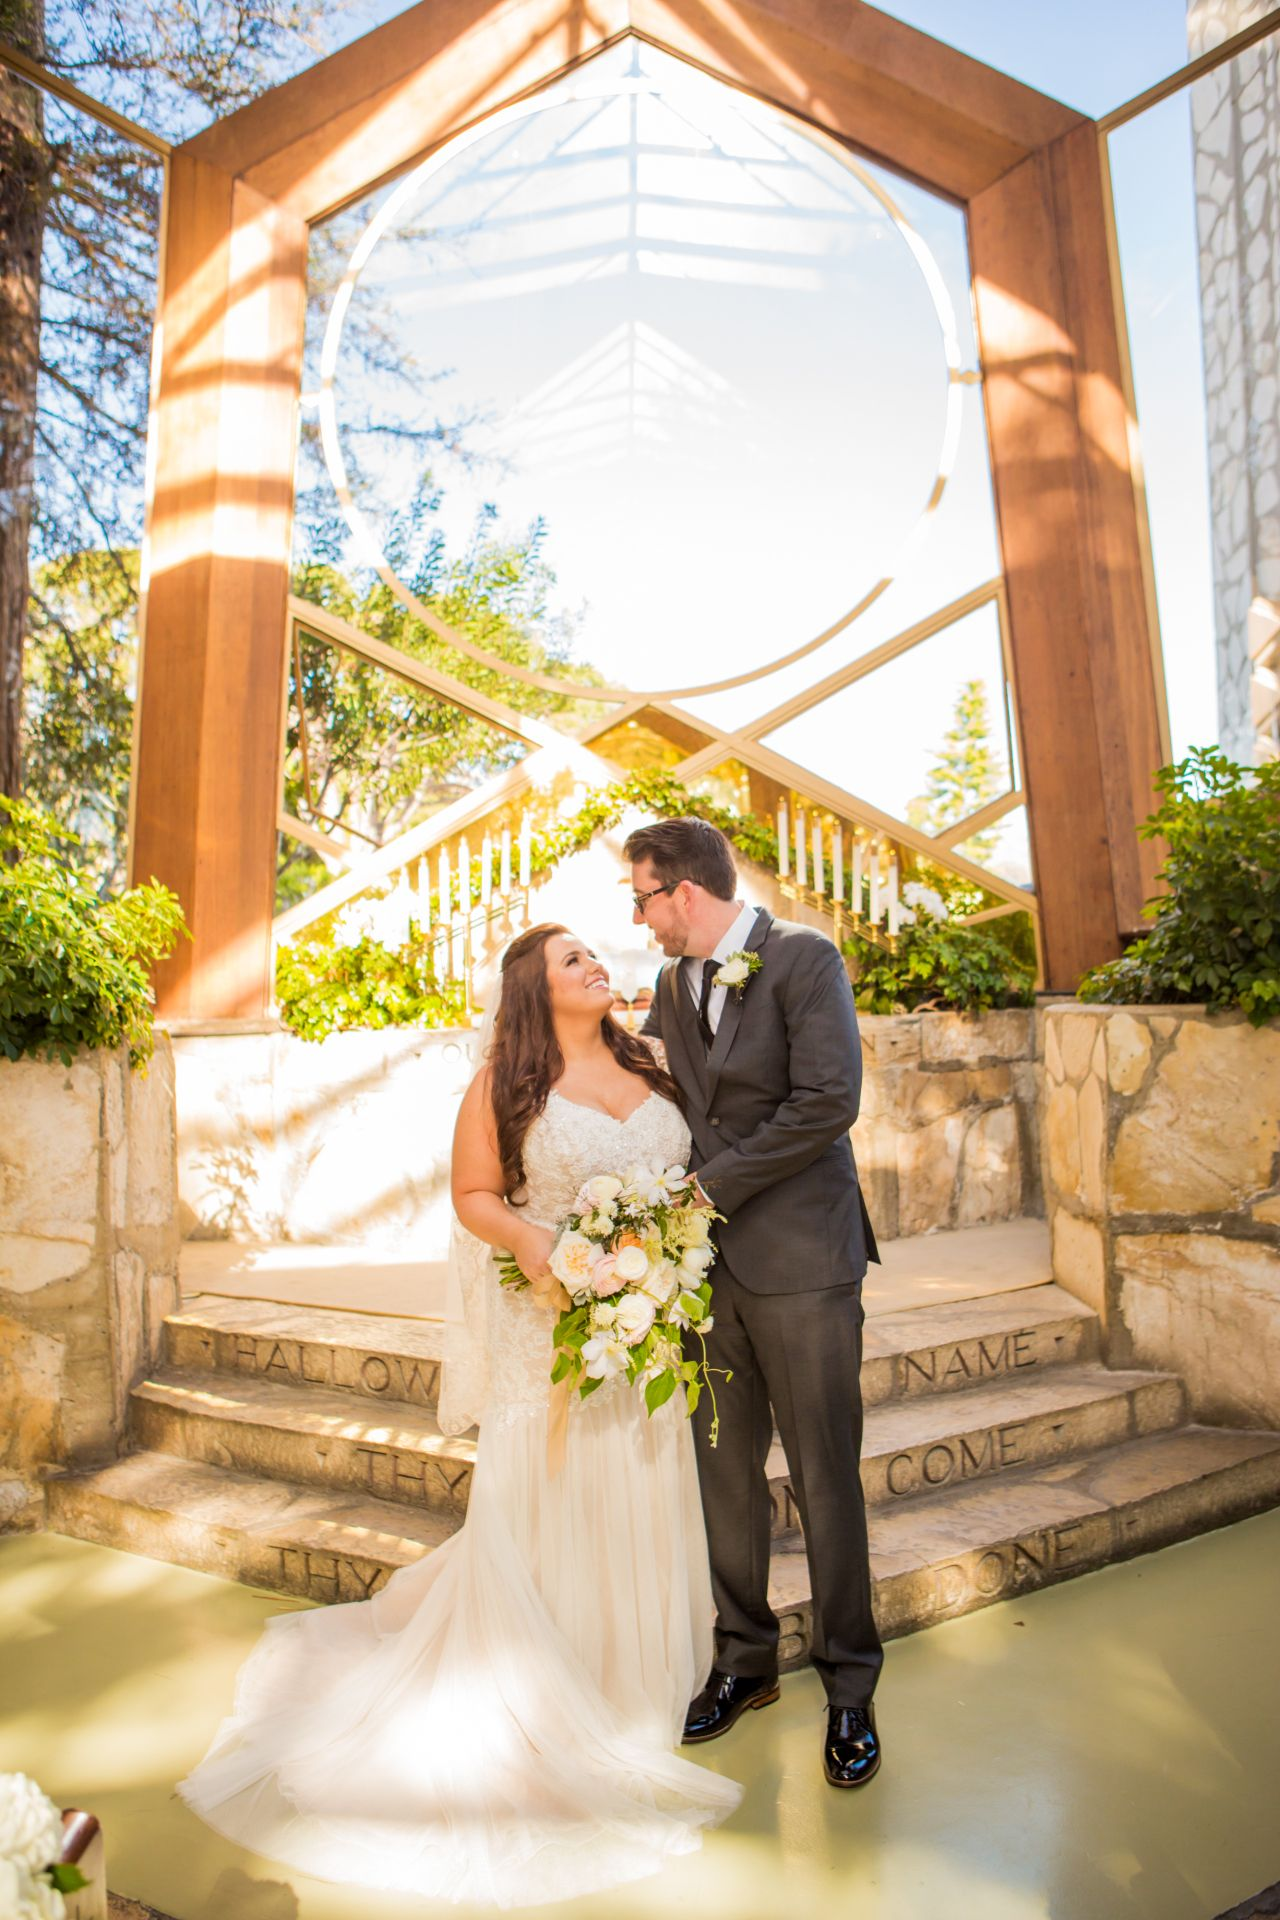 Galina signature wedding dress  Visit livestranded to see our wedding at Wayfarers Chapel in